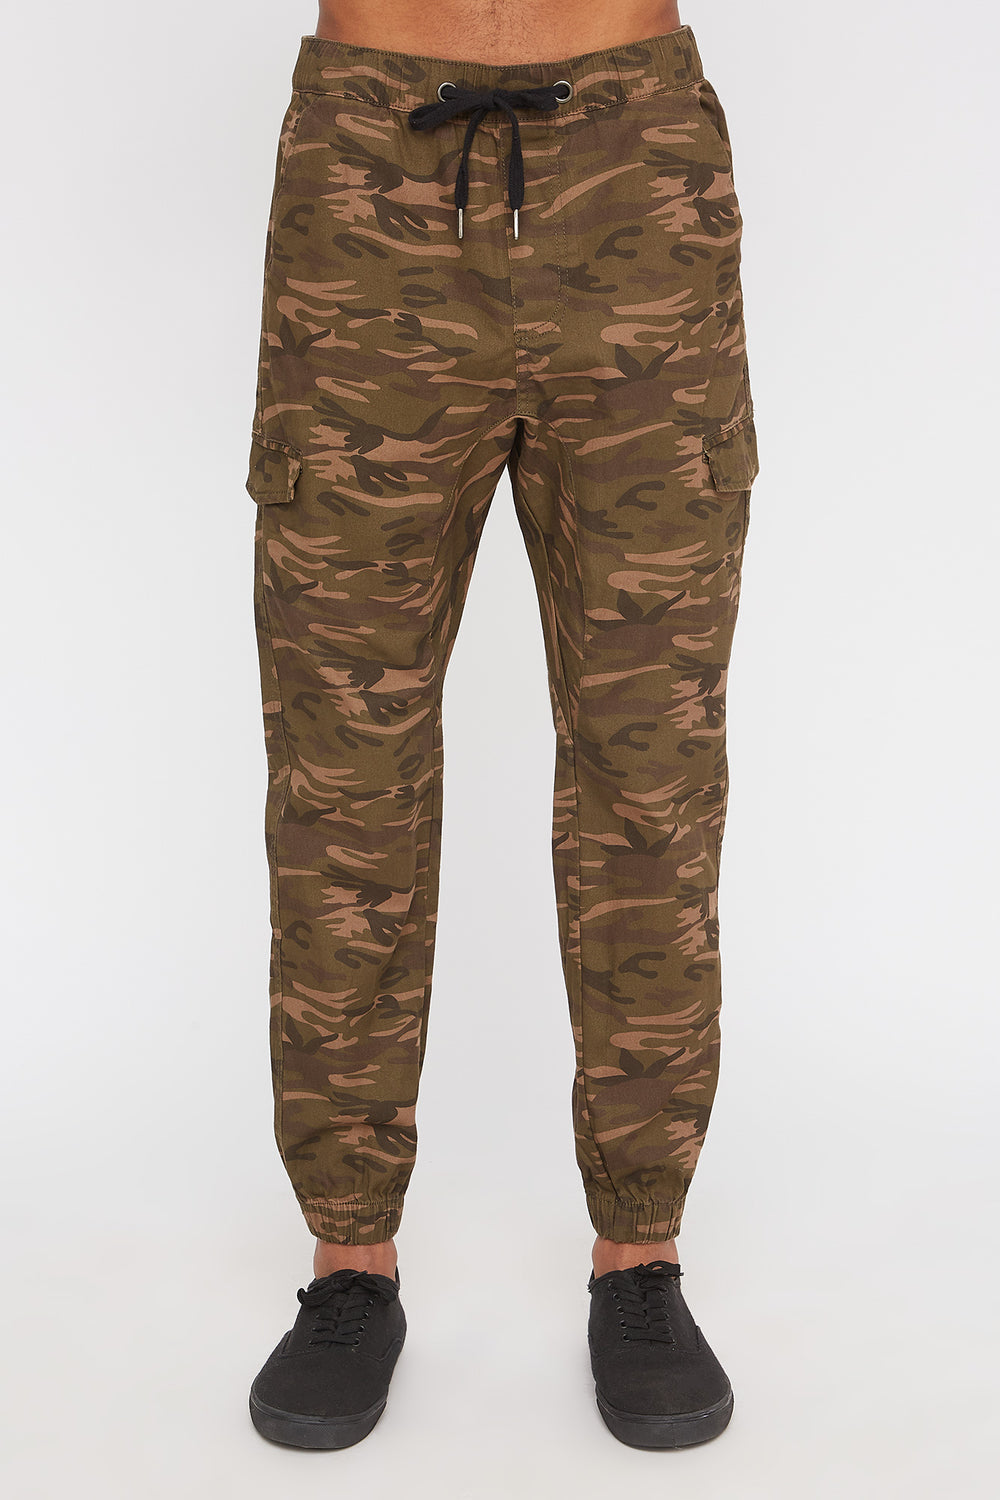 Jogger Cargo Camouflage West49 Homme Camoufle